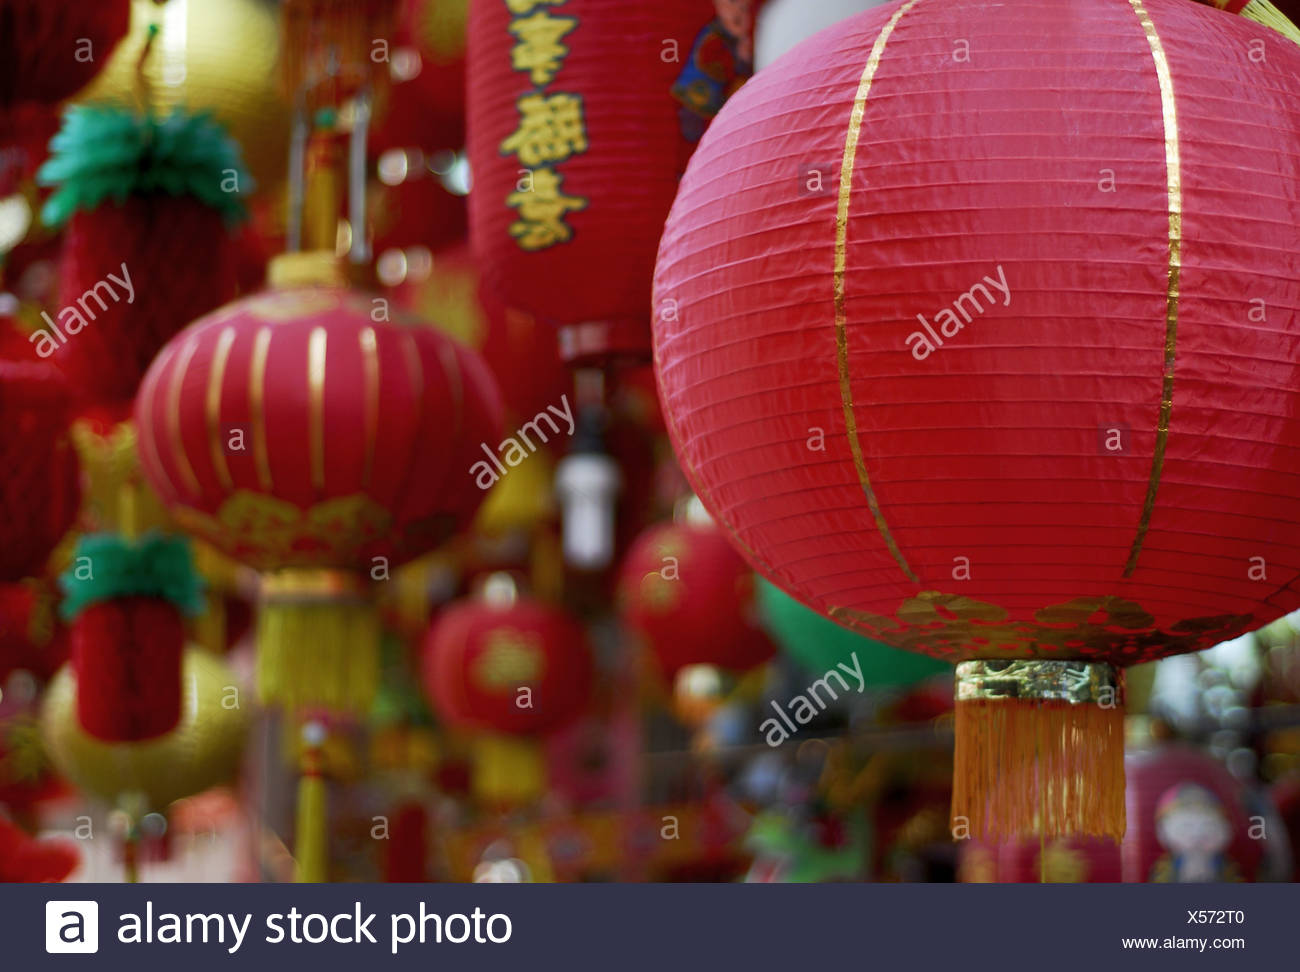 Lampions detail lanterns approximately cylindrically characters fringes red colorfully 03/2006 Asian Asia hung up illumination - Stock Image